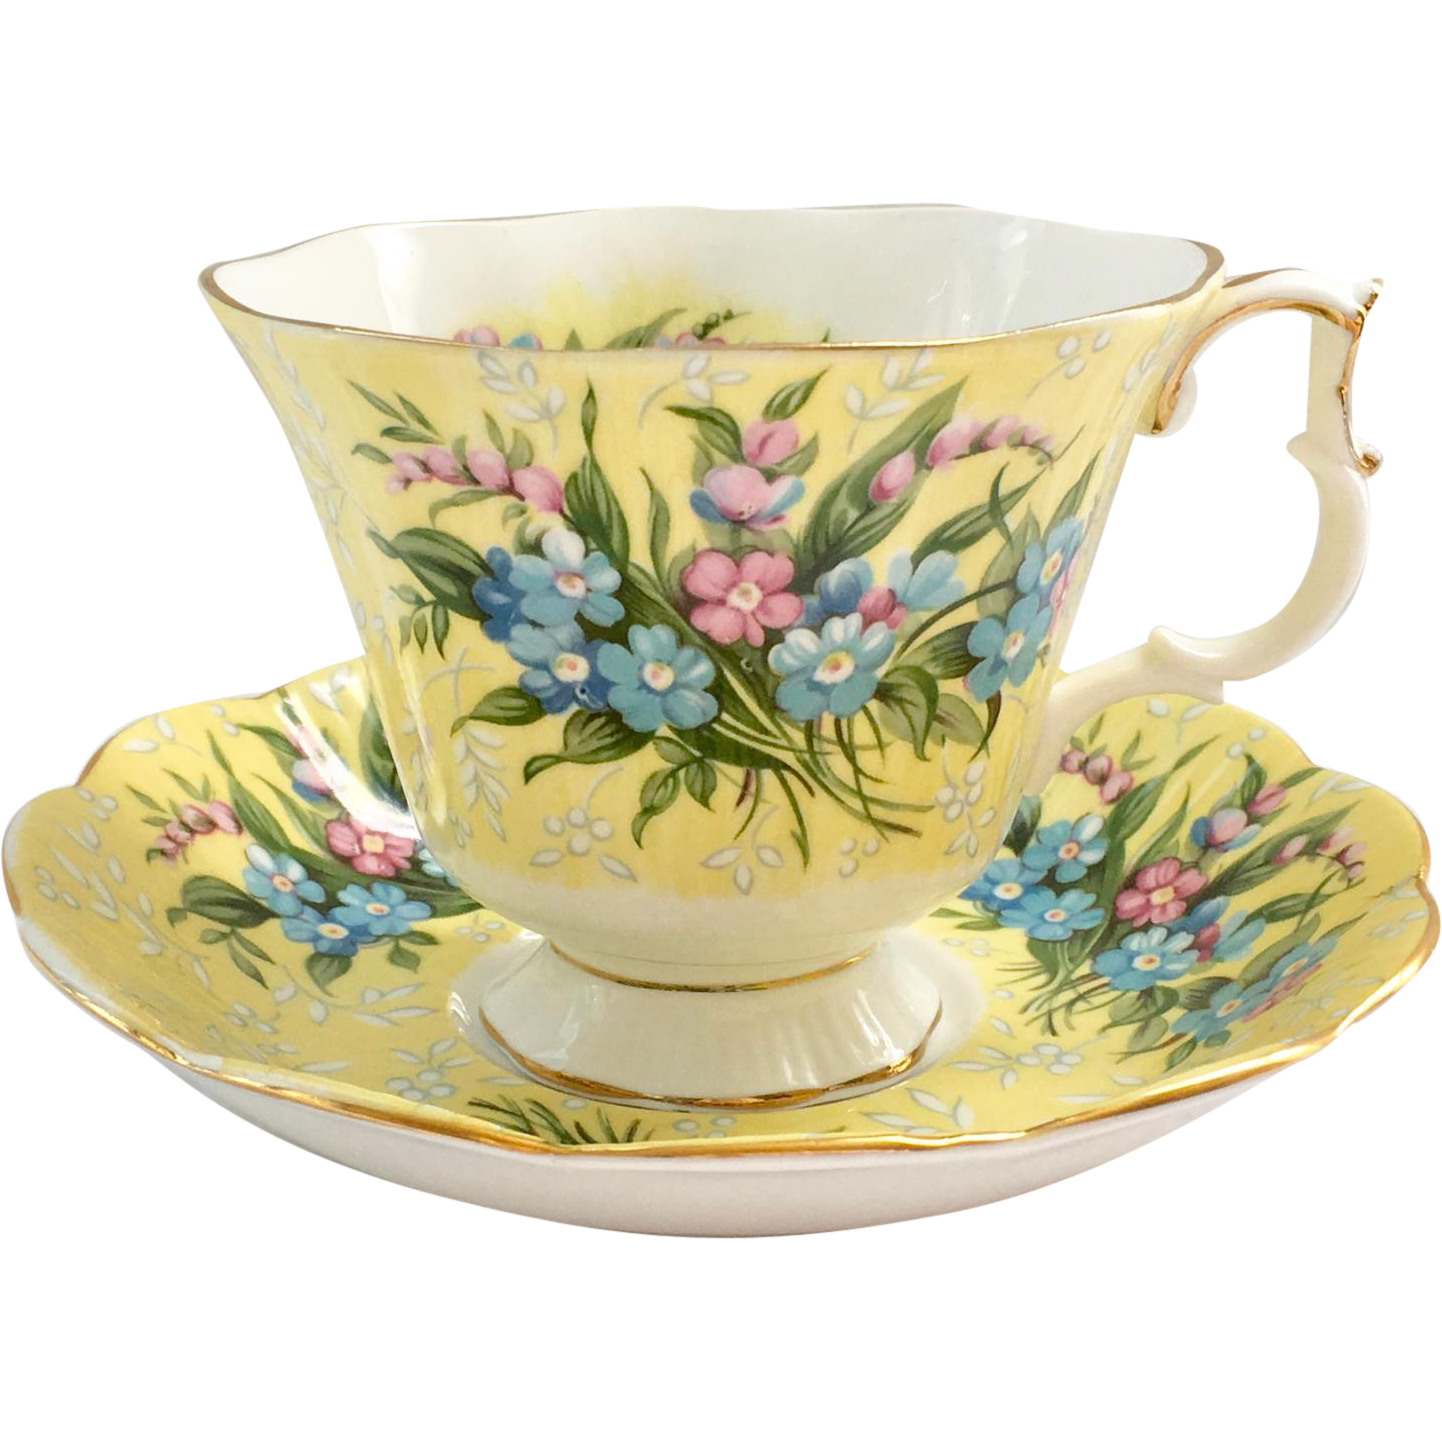 another wonderful example of the fine quality of royal albert bone china is offered here in